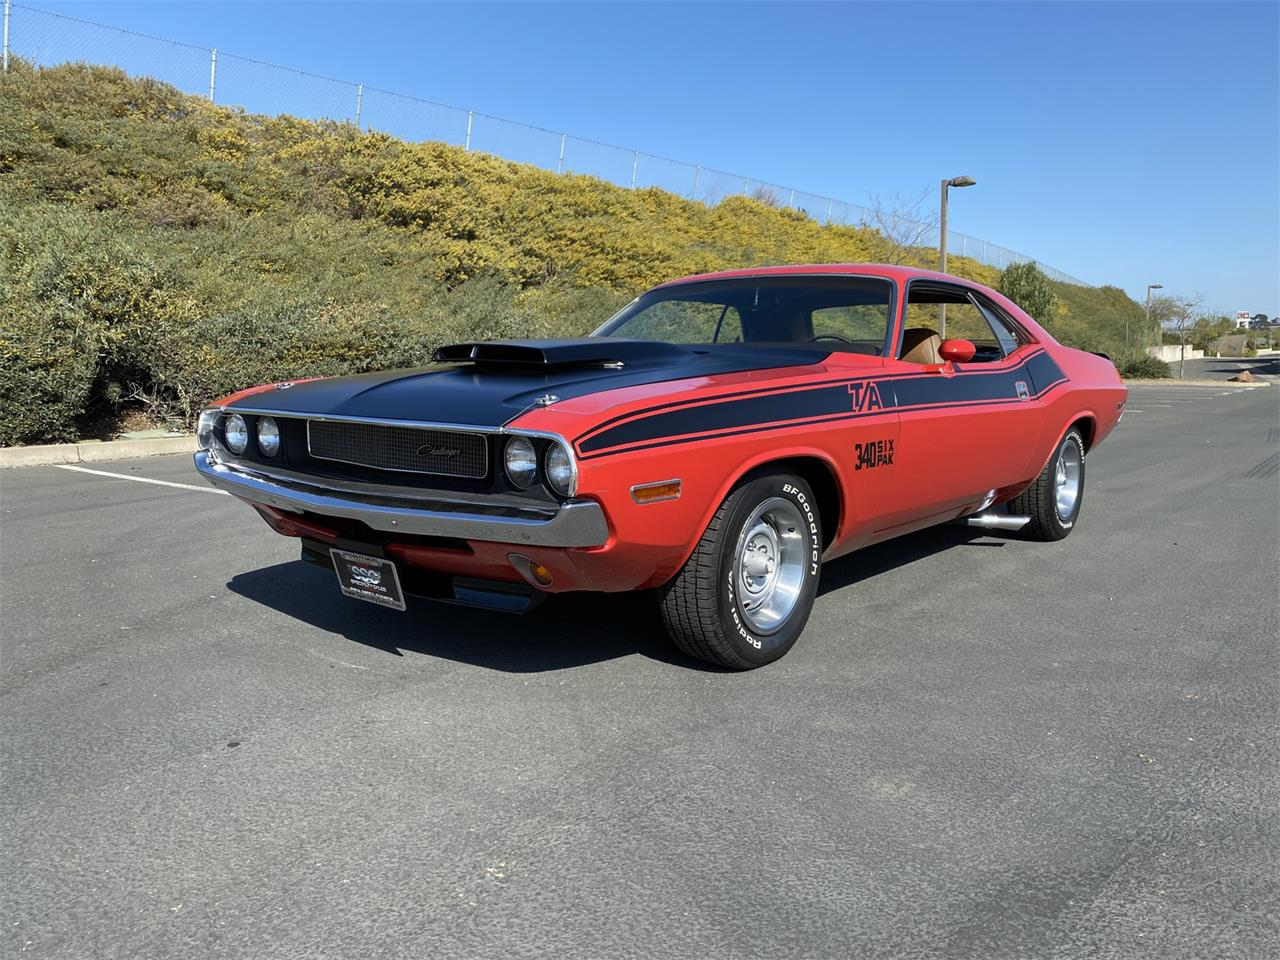 for sale 1970 dodge challenger in fairfield, california cars - fairfield, ca at geebo